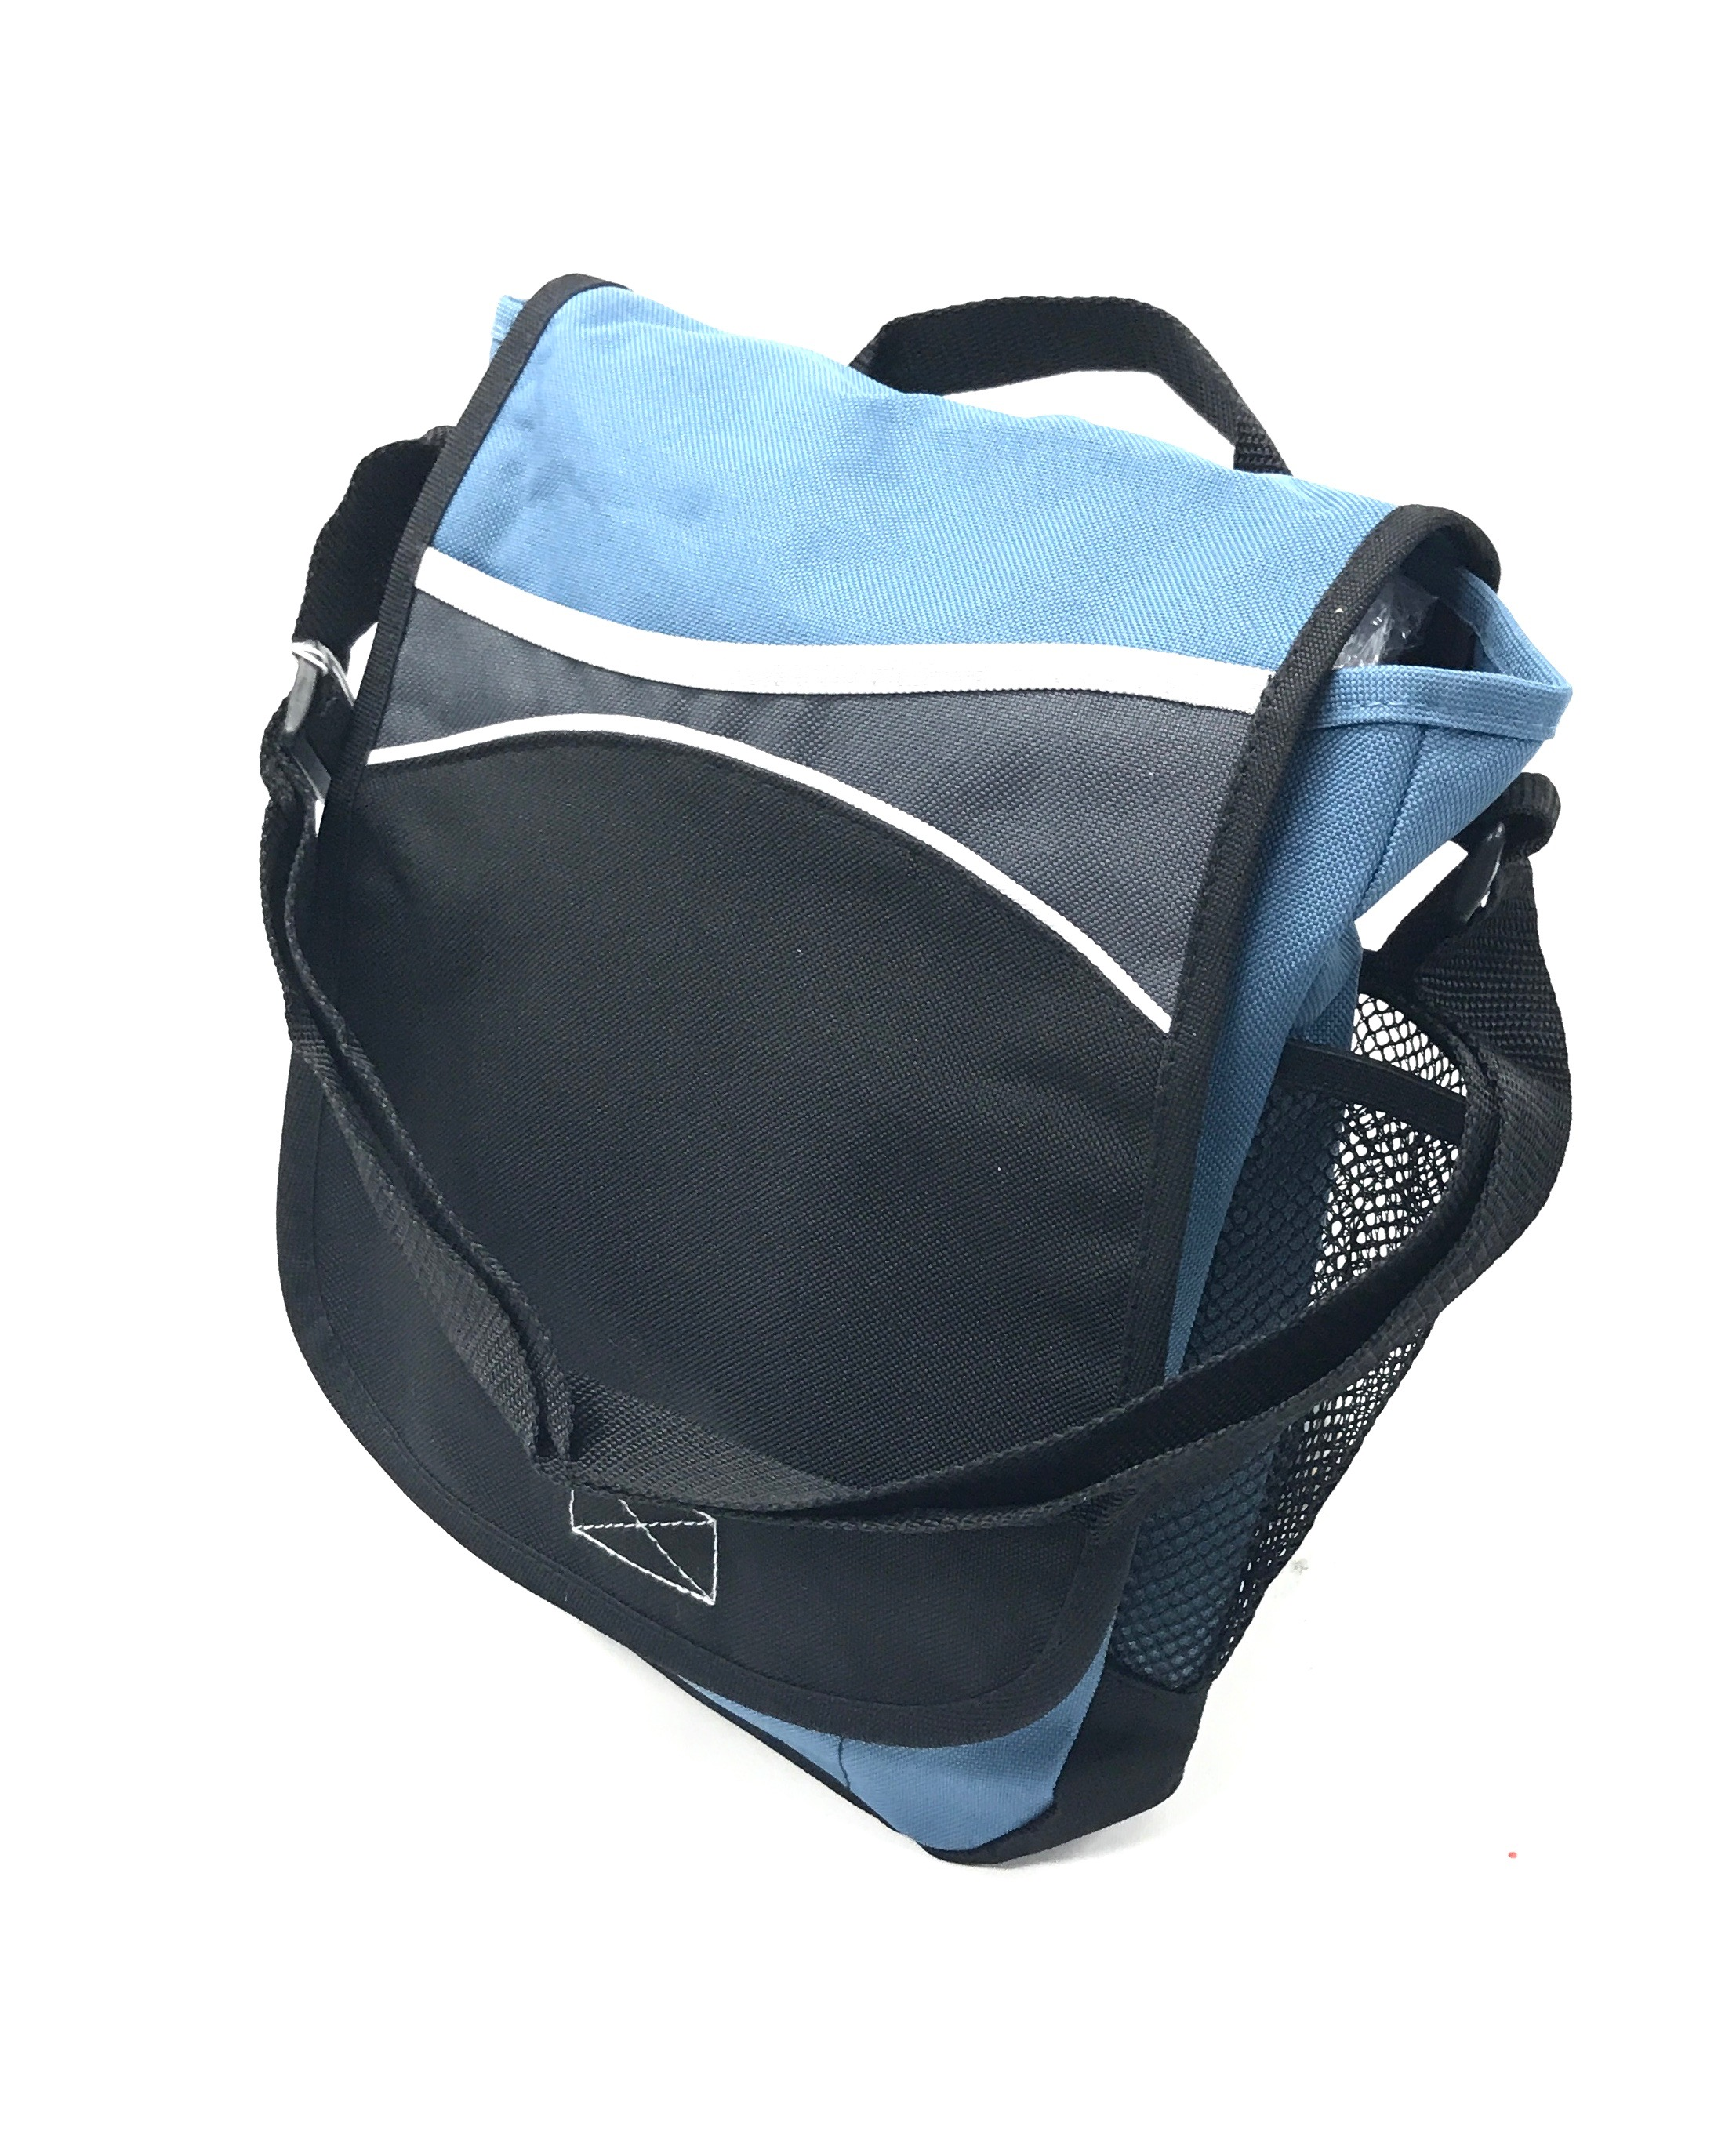 (117151) Route 66 Carry All - Steel Blue